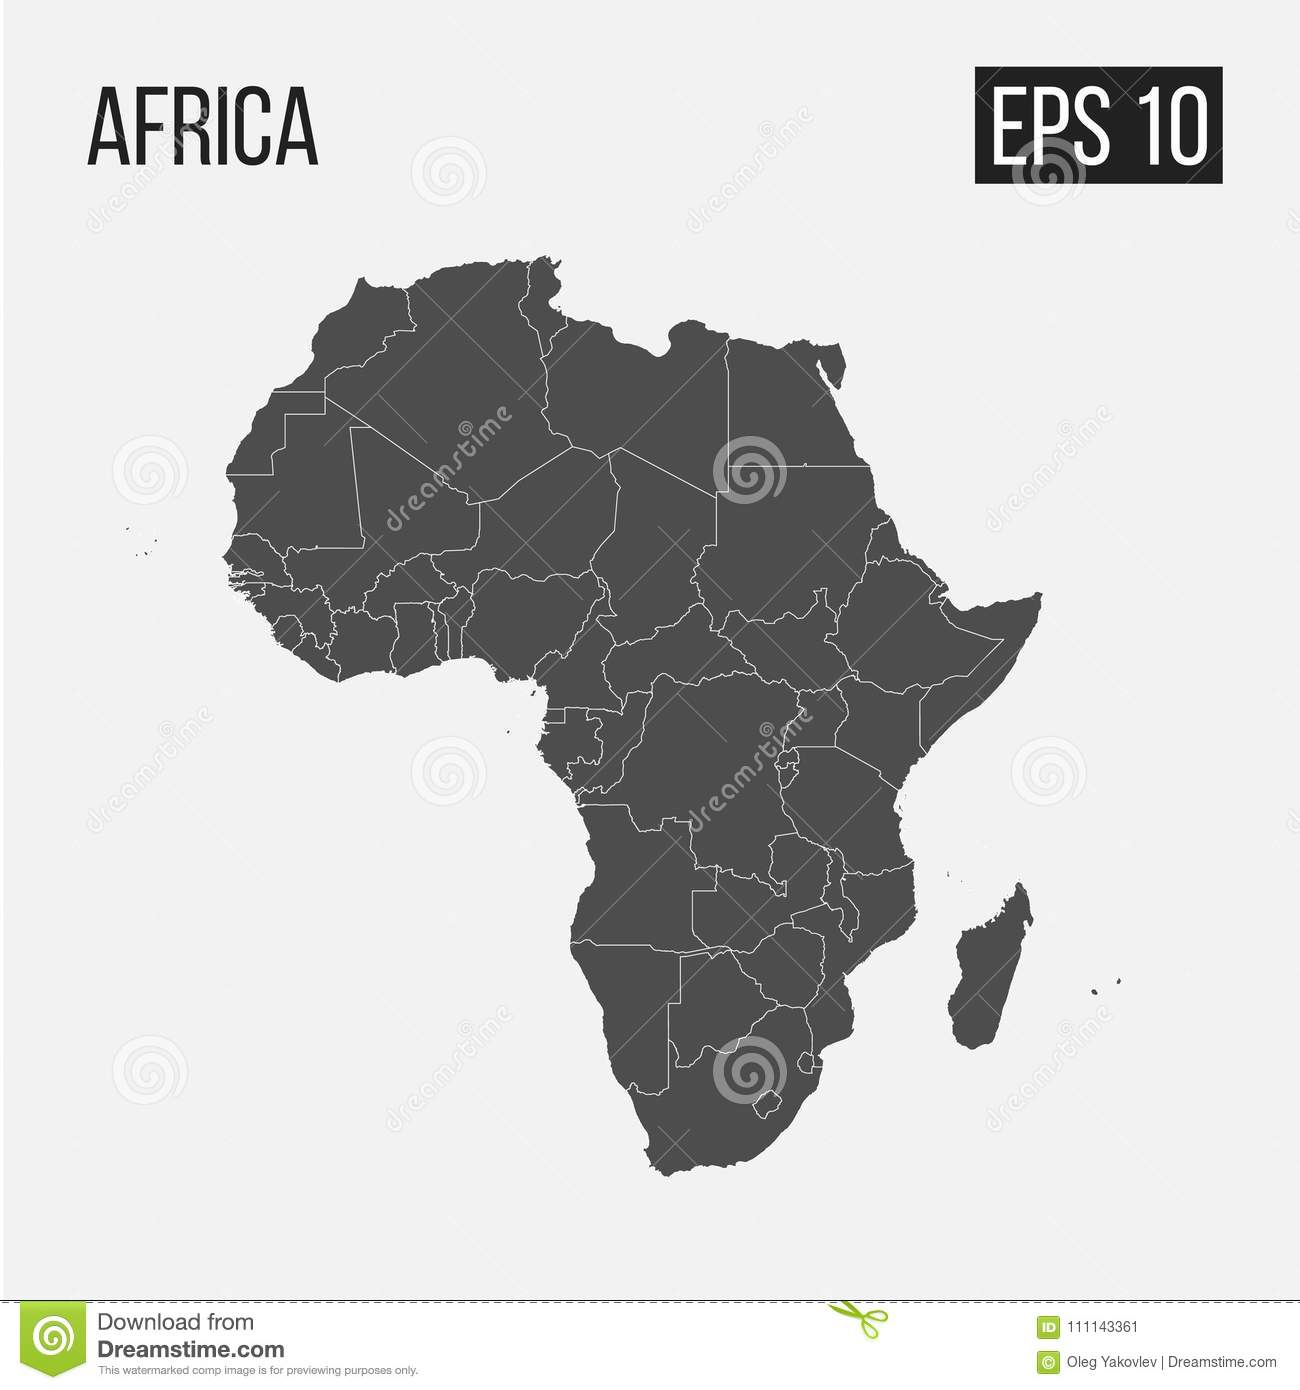 Map Of Africa Regions.Map Of Africa With Regions Stock Vector Illustration Of Design